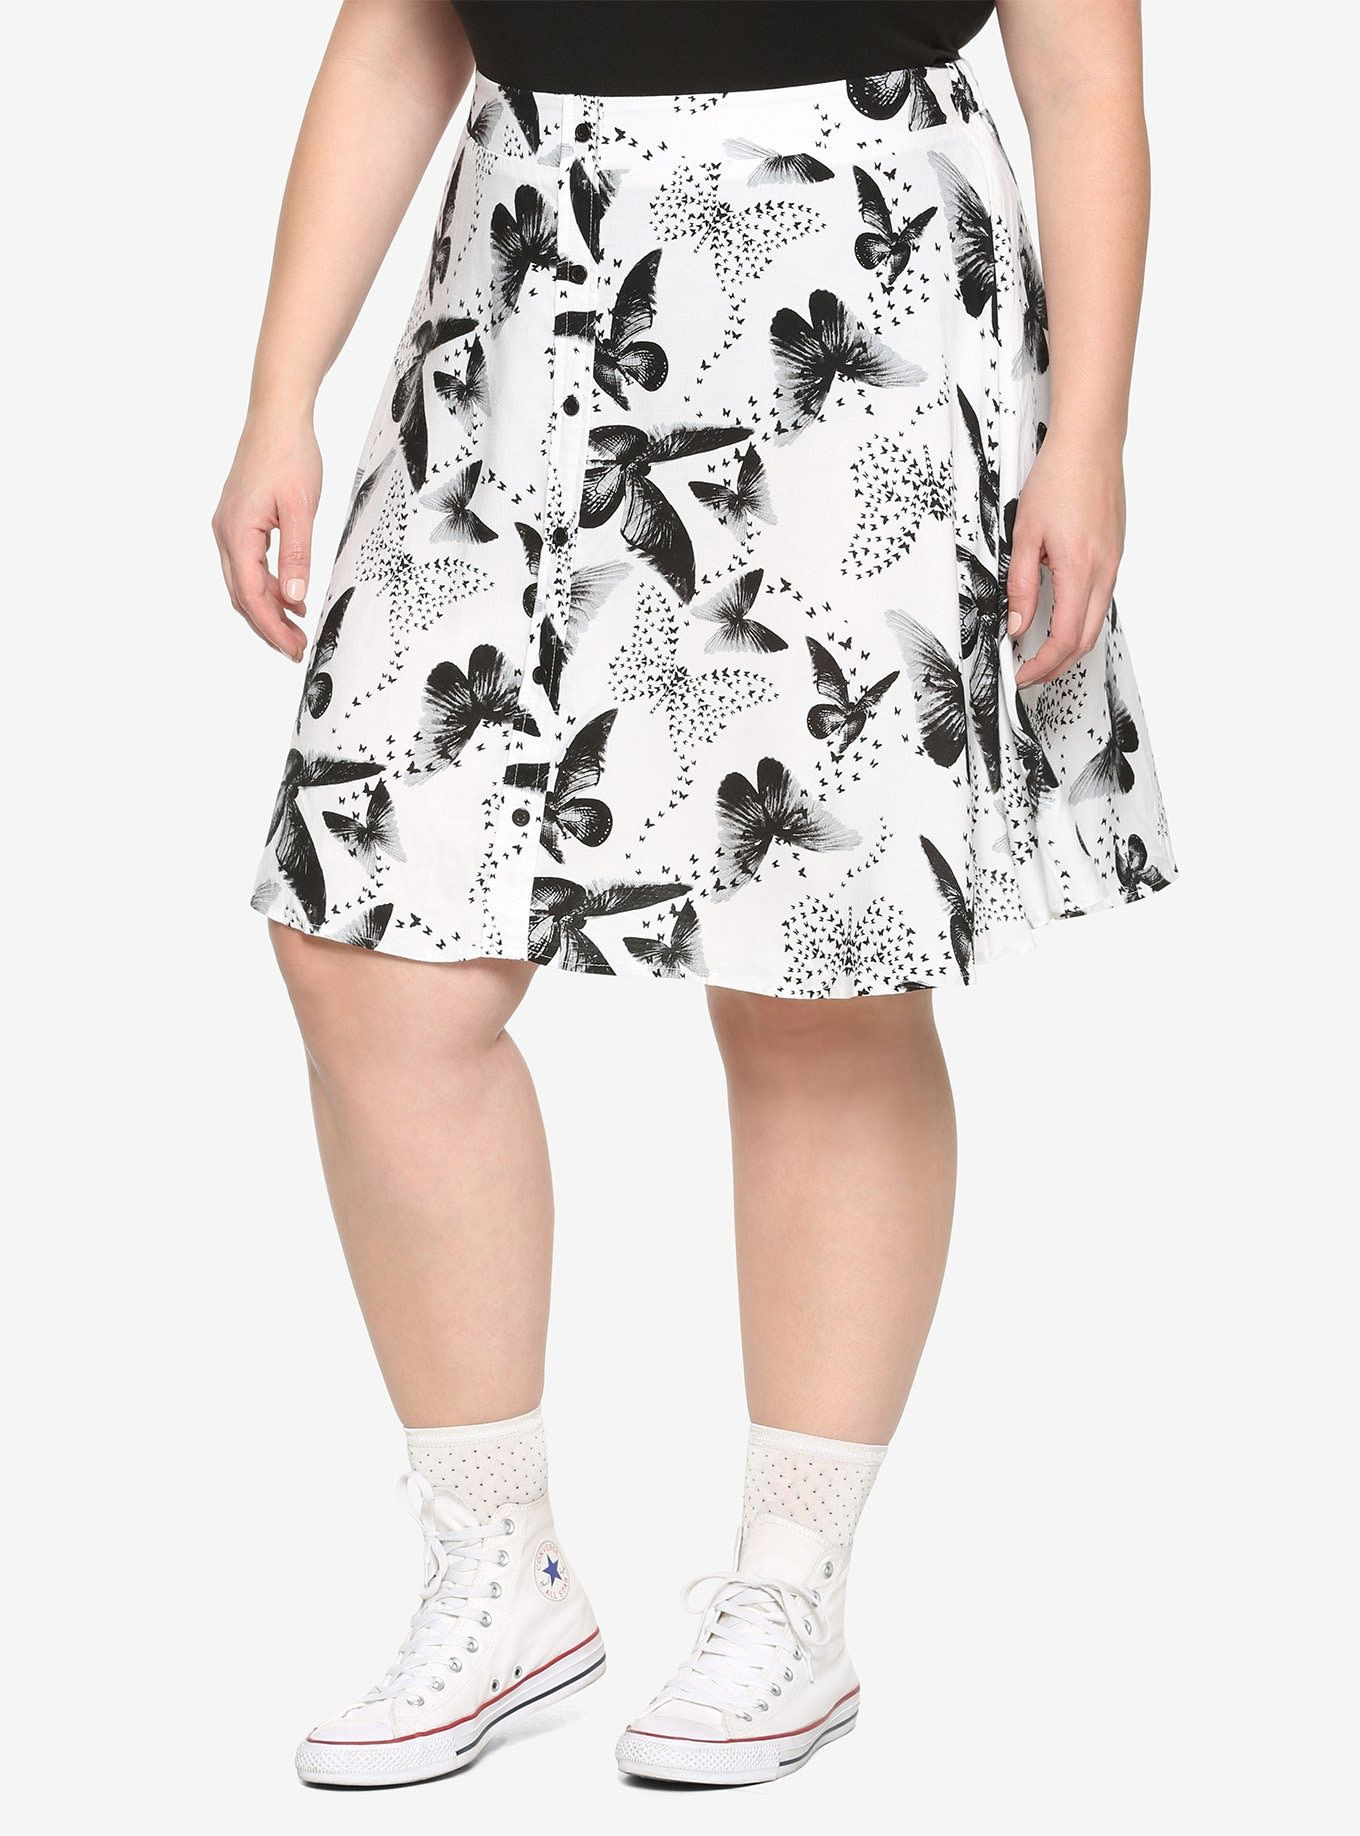 70bb759cc6 Black & White Butterfly Print Skirt Plus Size in 2019 | Clothing ...